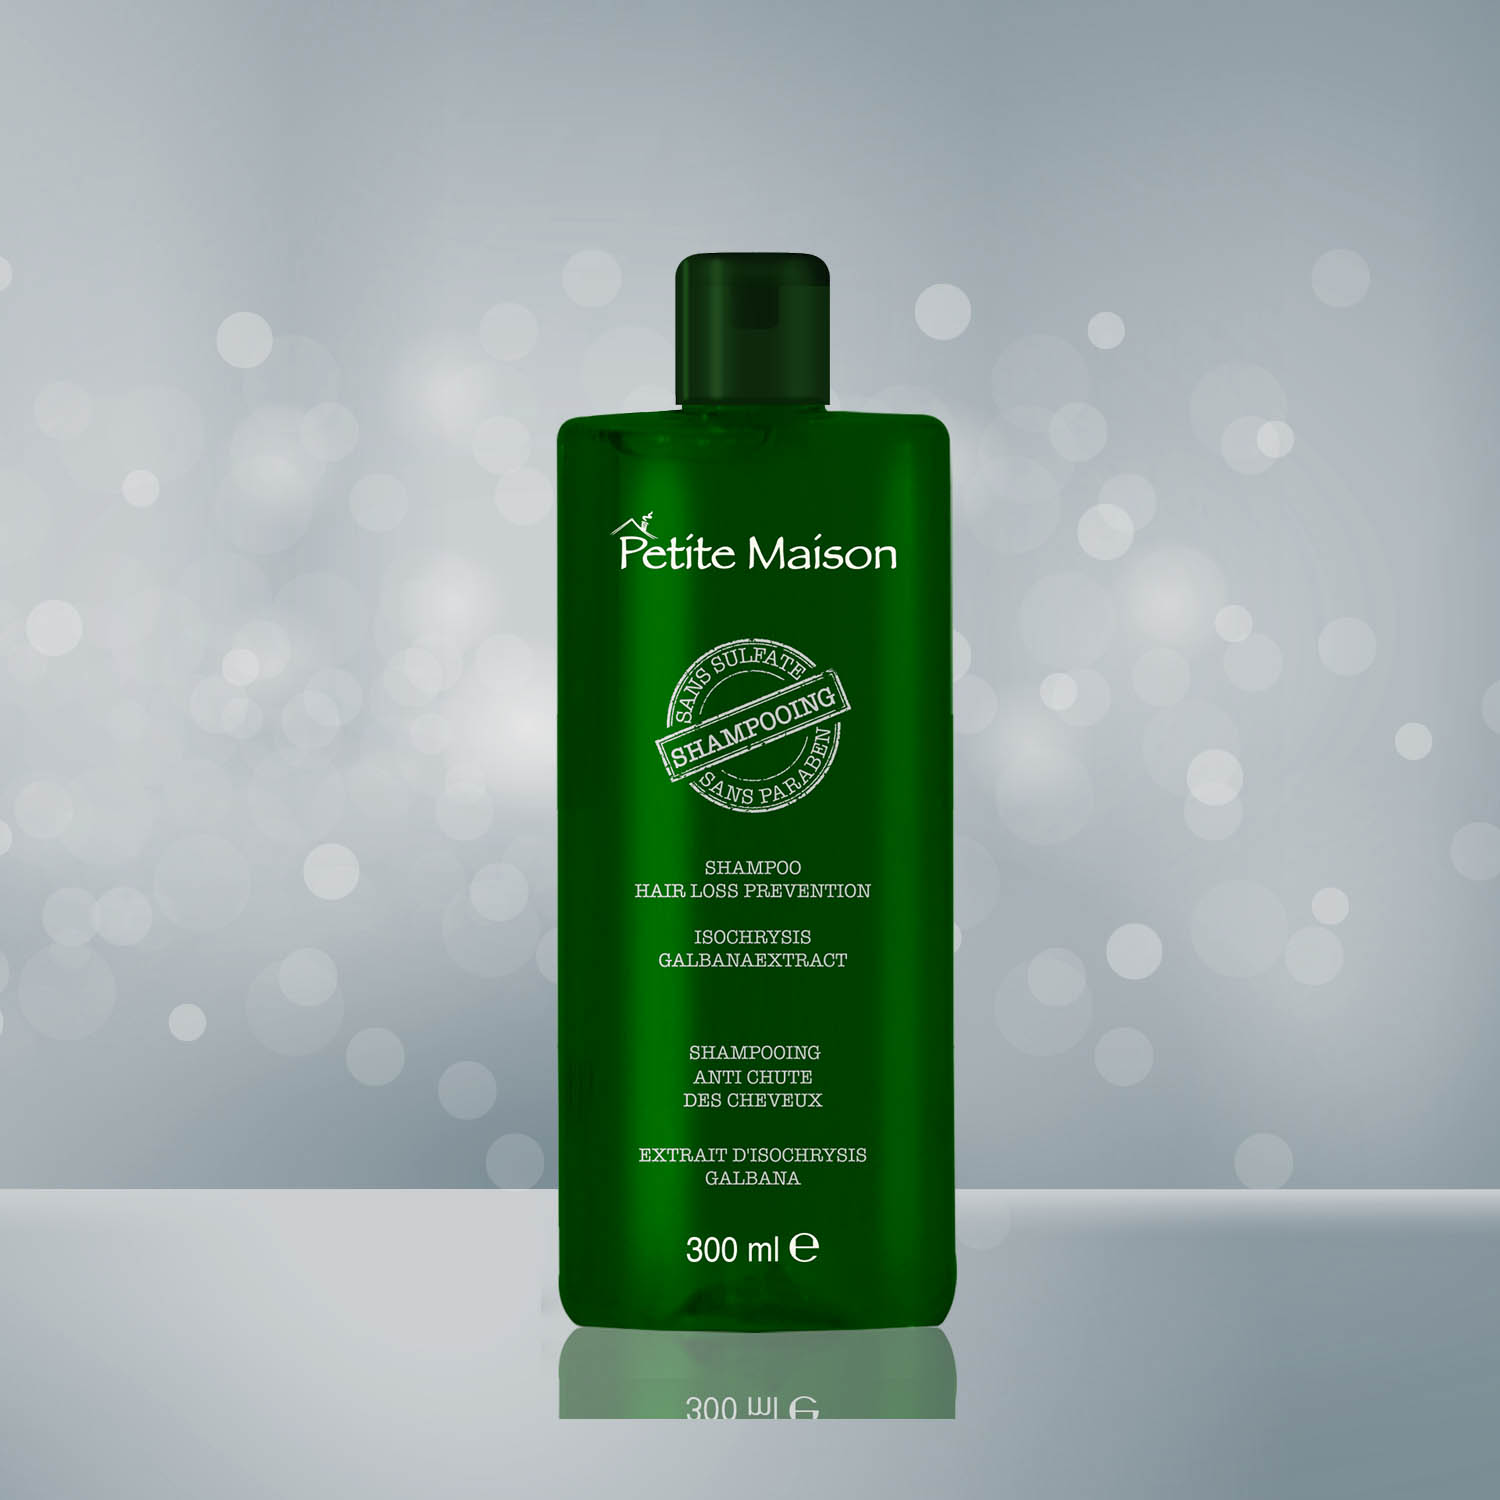 Petite Maison  Hair Loss Prevention Shampoo